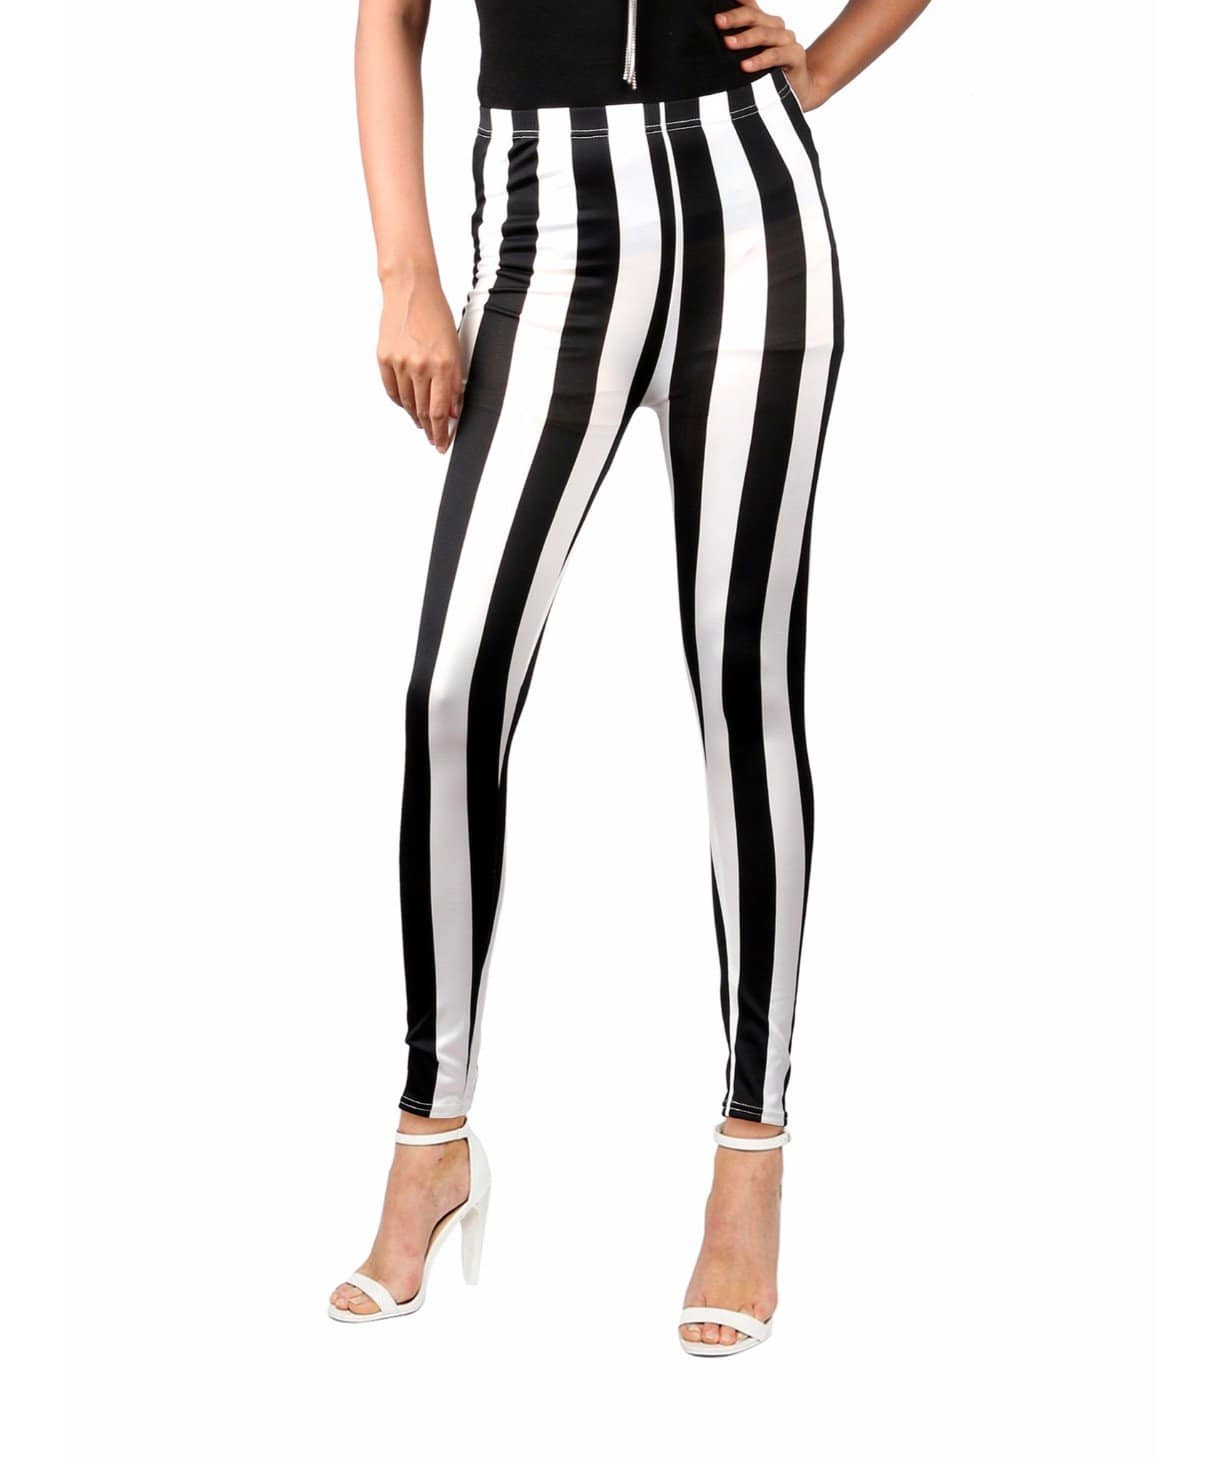 Monochrome Striped Leggings